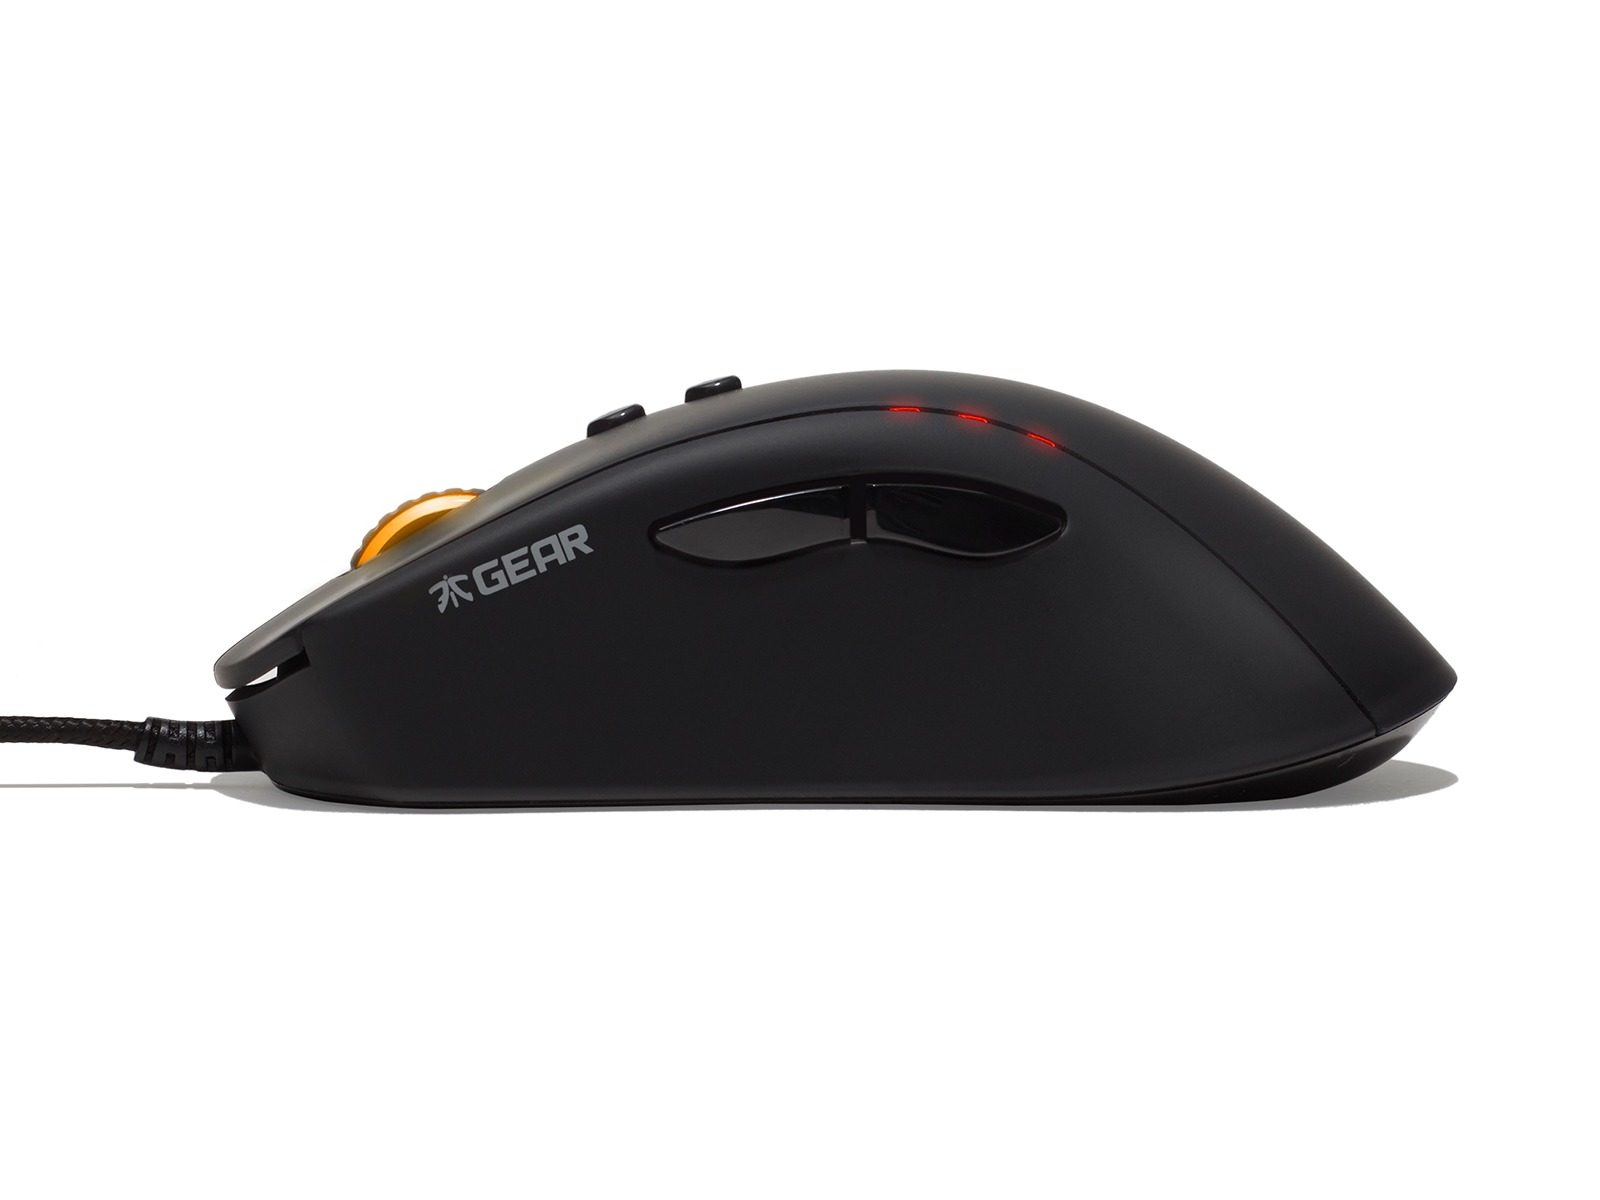 Fnatic Clutch Gaming Mouse for PC Games image